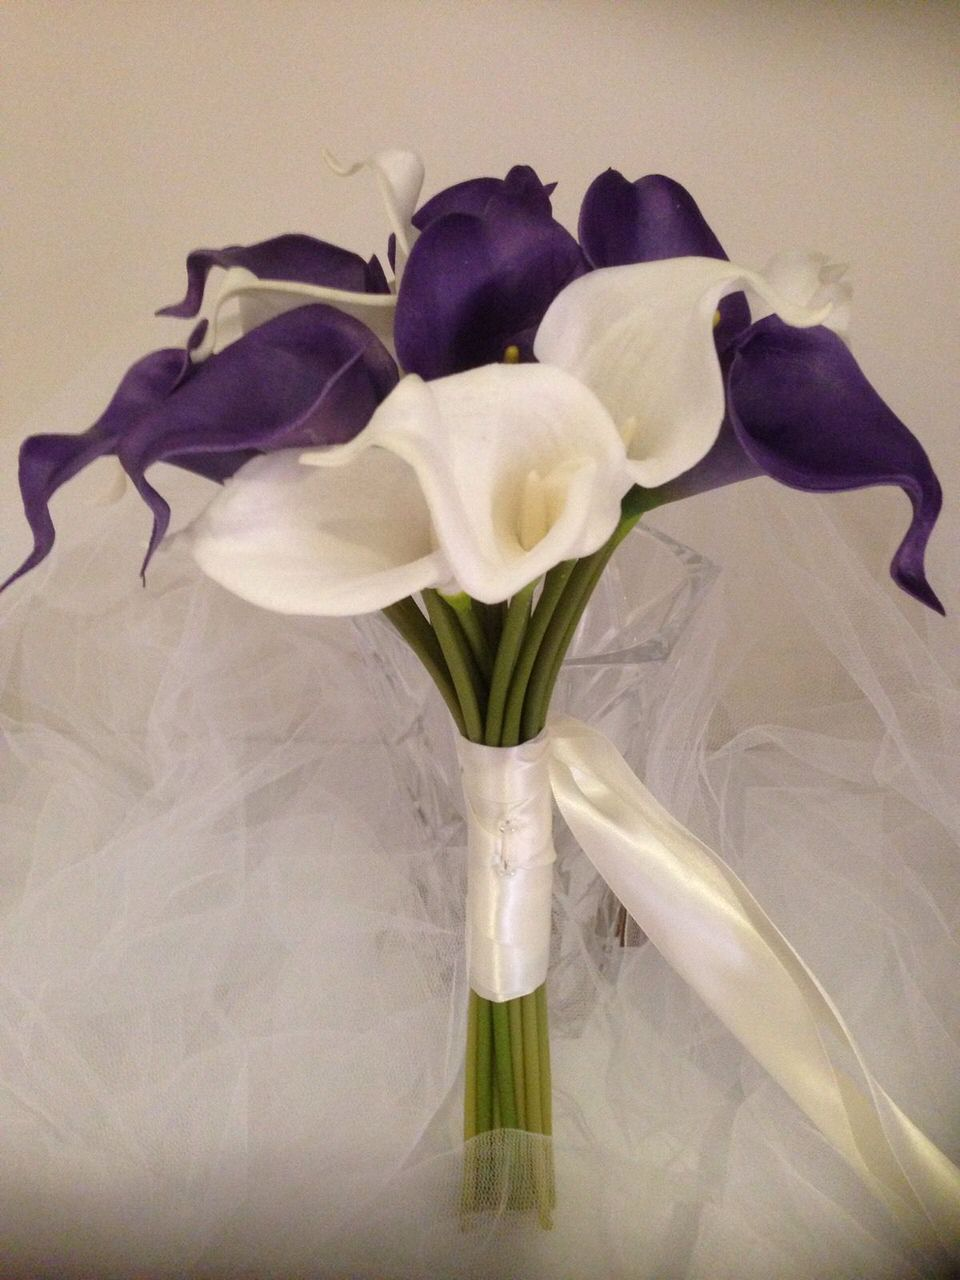 Calla lillY Wedding Bouquet 18 Stems IVORY & PURPLE Real Touch ...